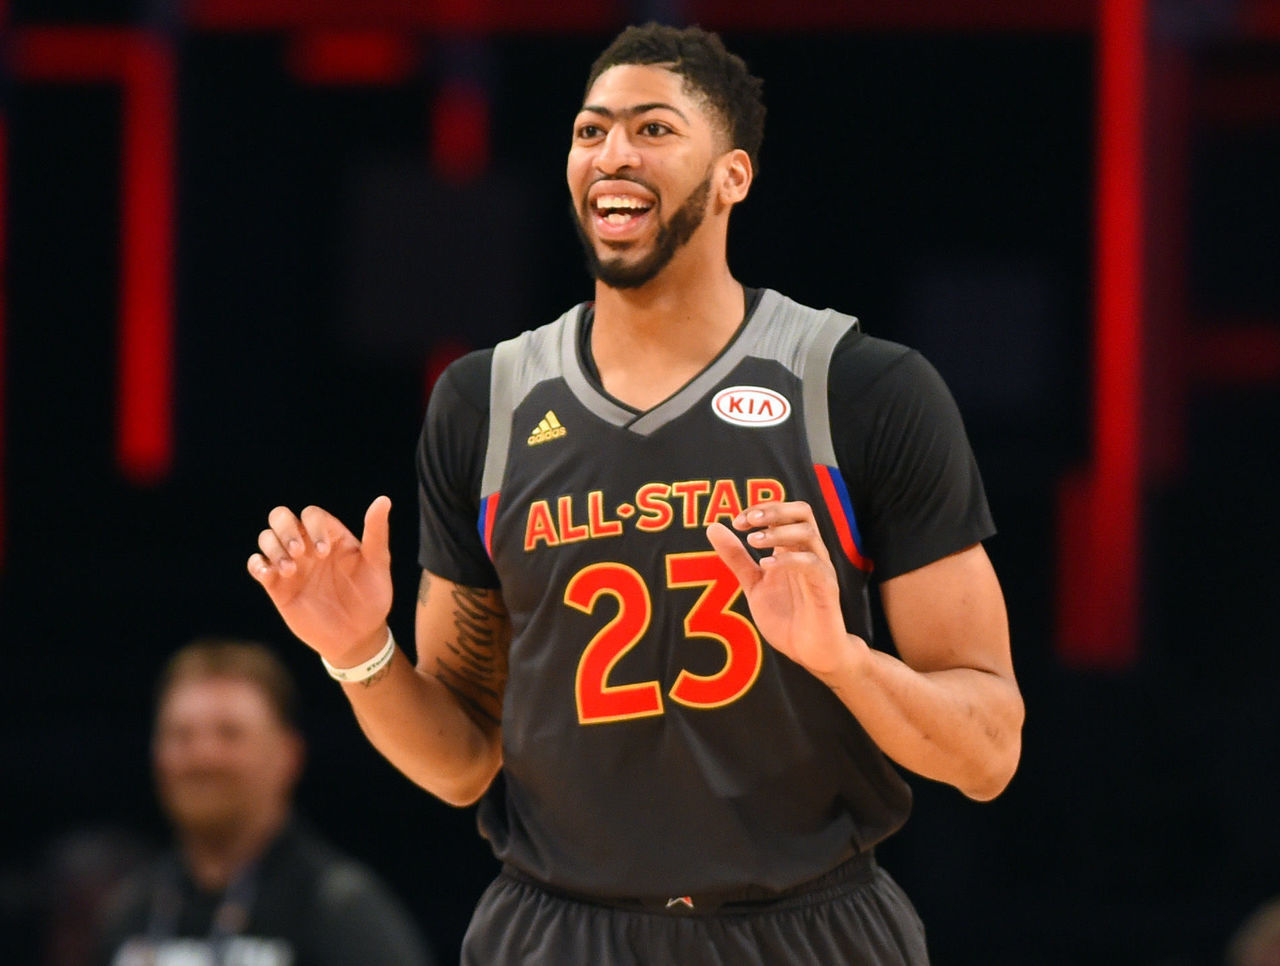 Cropped 2017 02 20t034647z 1916274112 nocid rtrmadp 3 nba all star game eastern at western